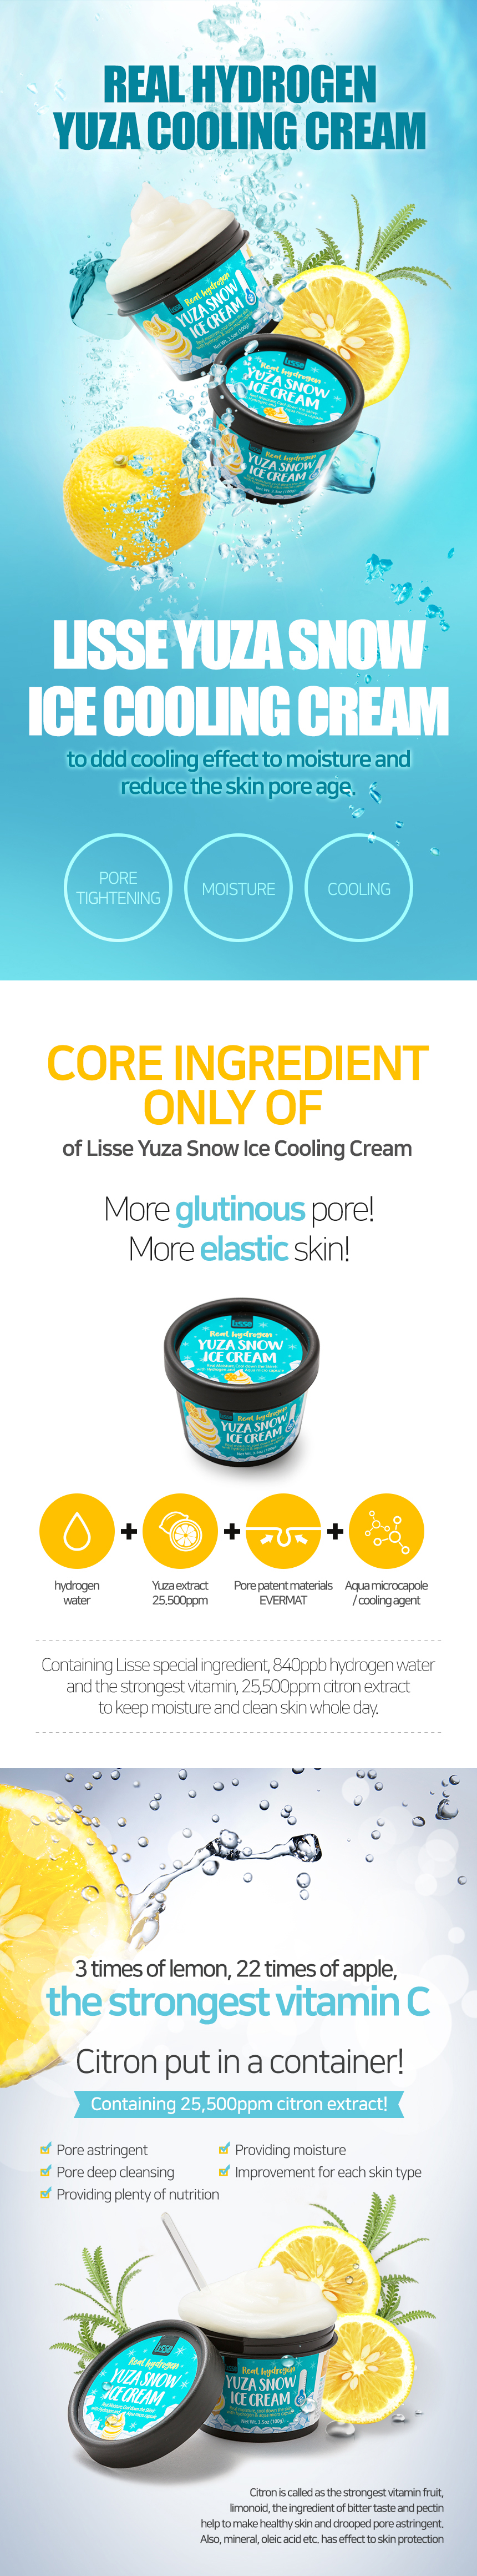 Lisse Yuza Snow Ice Cooling Cream